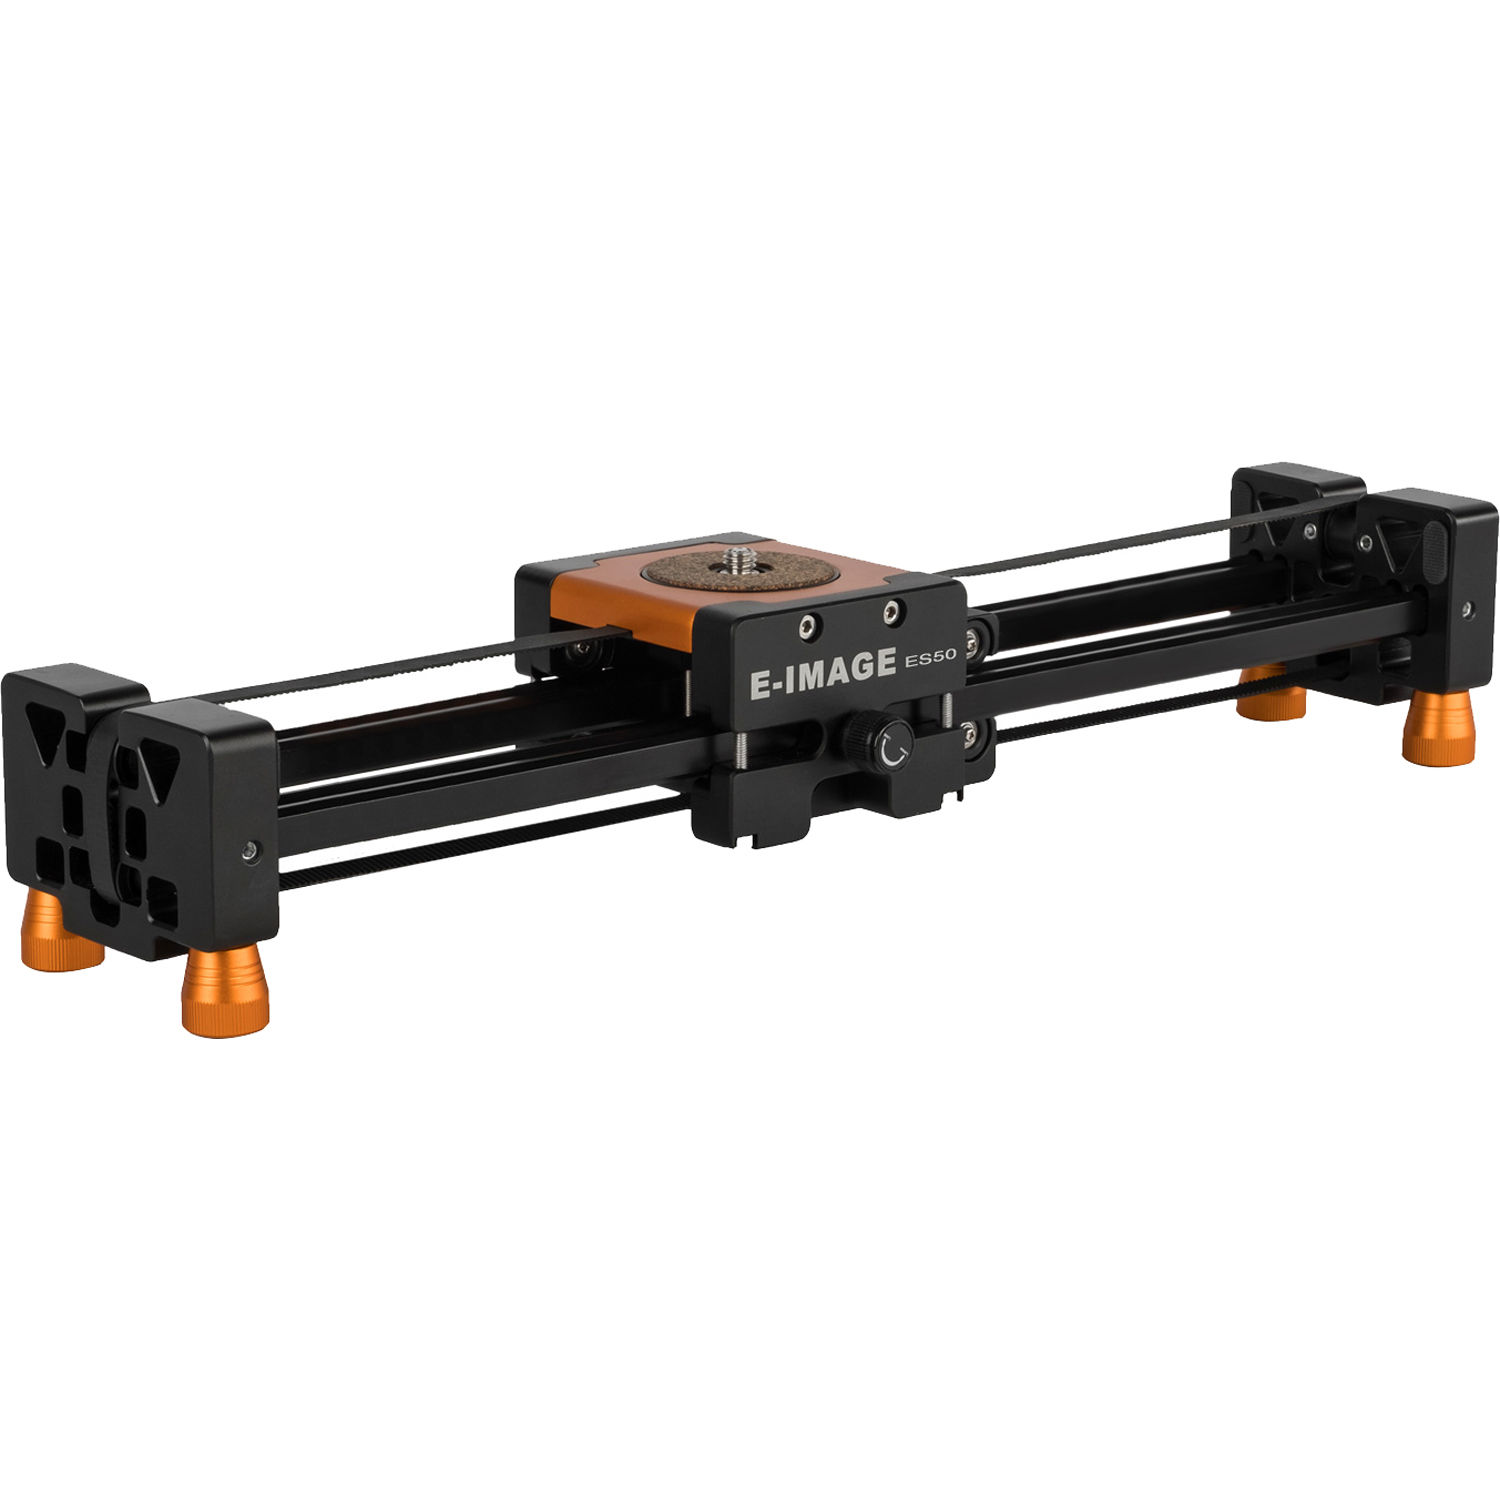 E-Image ES50 Slider with 29.1″ Sliding Range and Adjustable Feet (19.7″) Pro Video E-Image